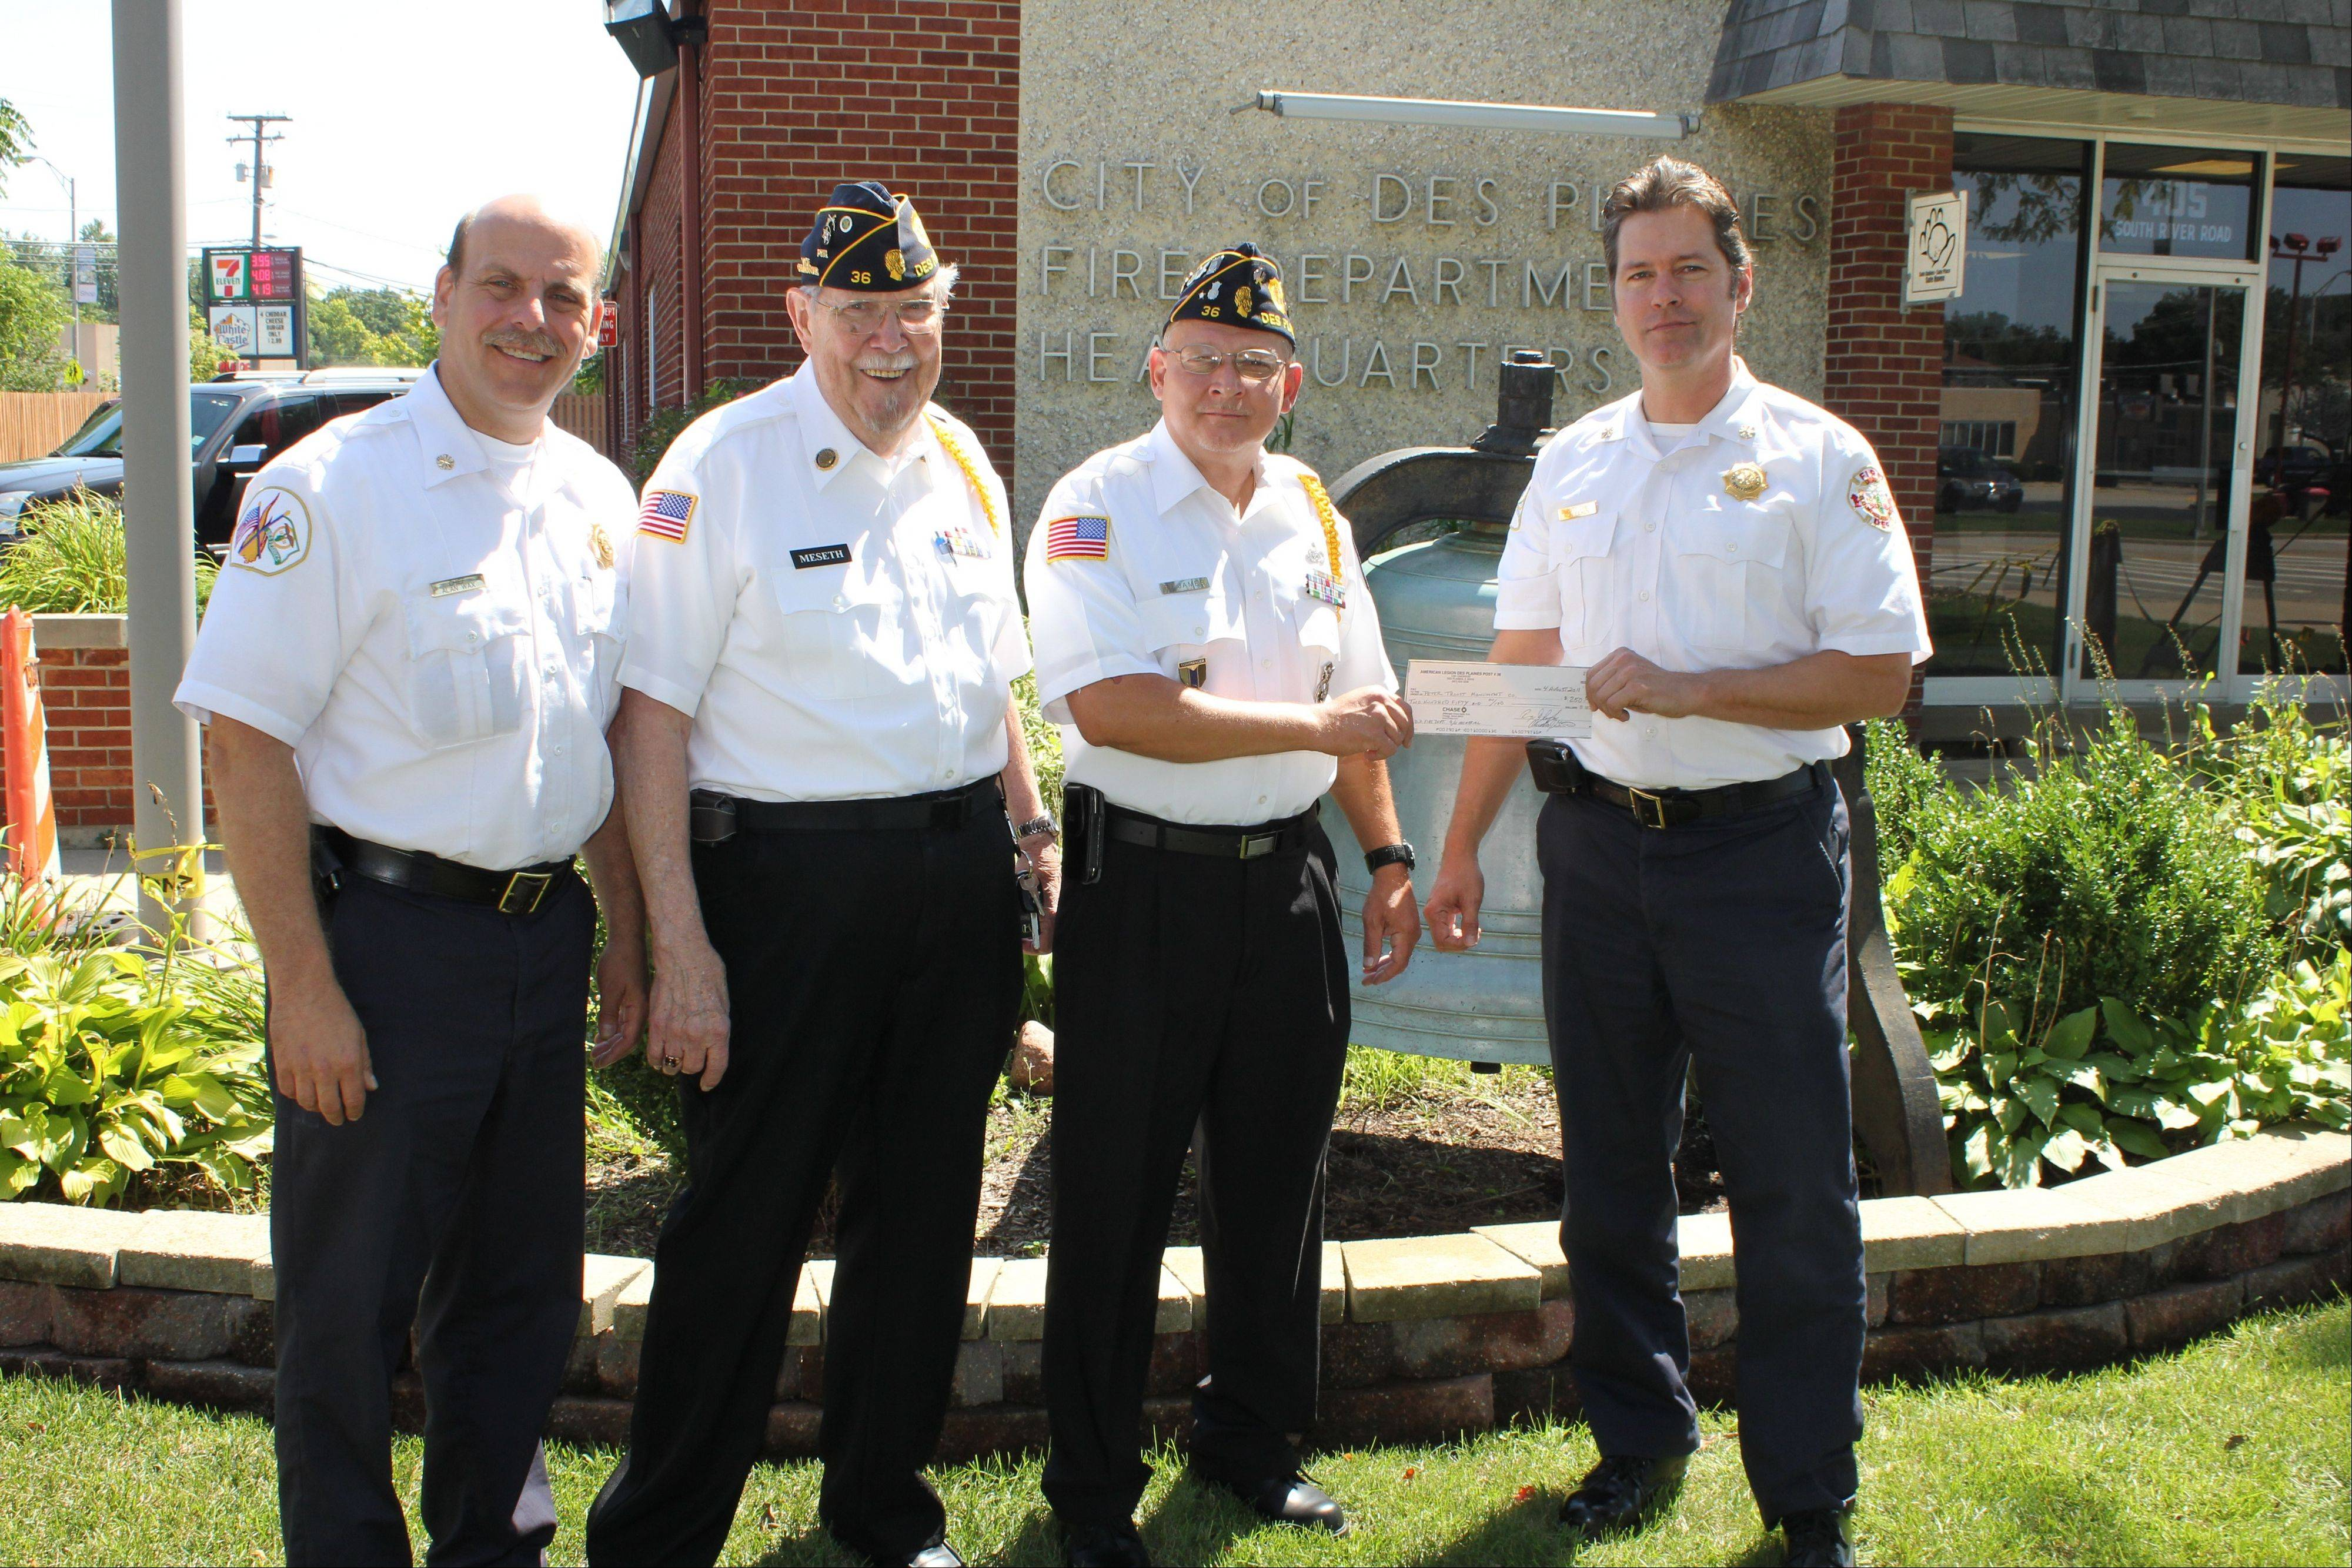 Pictured, from left, Des Plaines Fire Chief Alan Wax; American Legion Post 36 Senior Vice Commander Don Meseth; American Legion Post 36 Commander Roger James; and Deputy Fire Chief Ron Eilken as the $250 check for the 9/11 Memorial is presented outside Fire Station 1, 405 S. River Road, Aug. 2.